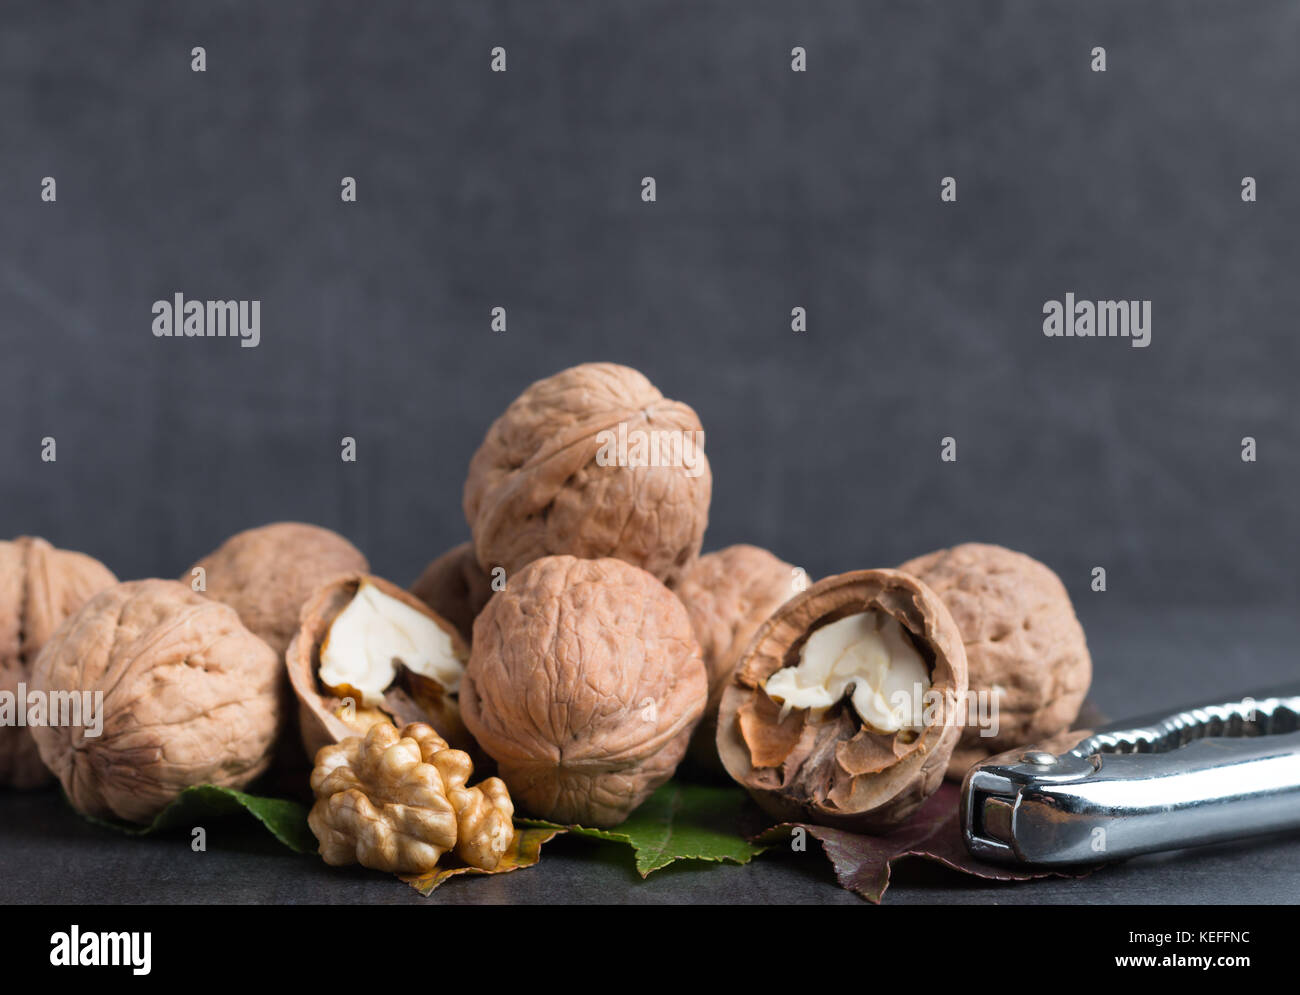 bio walnuts on a stone table with a nutcracker - Stock Image